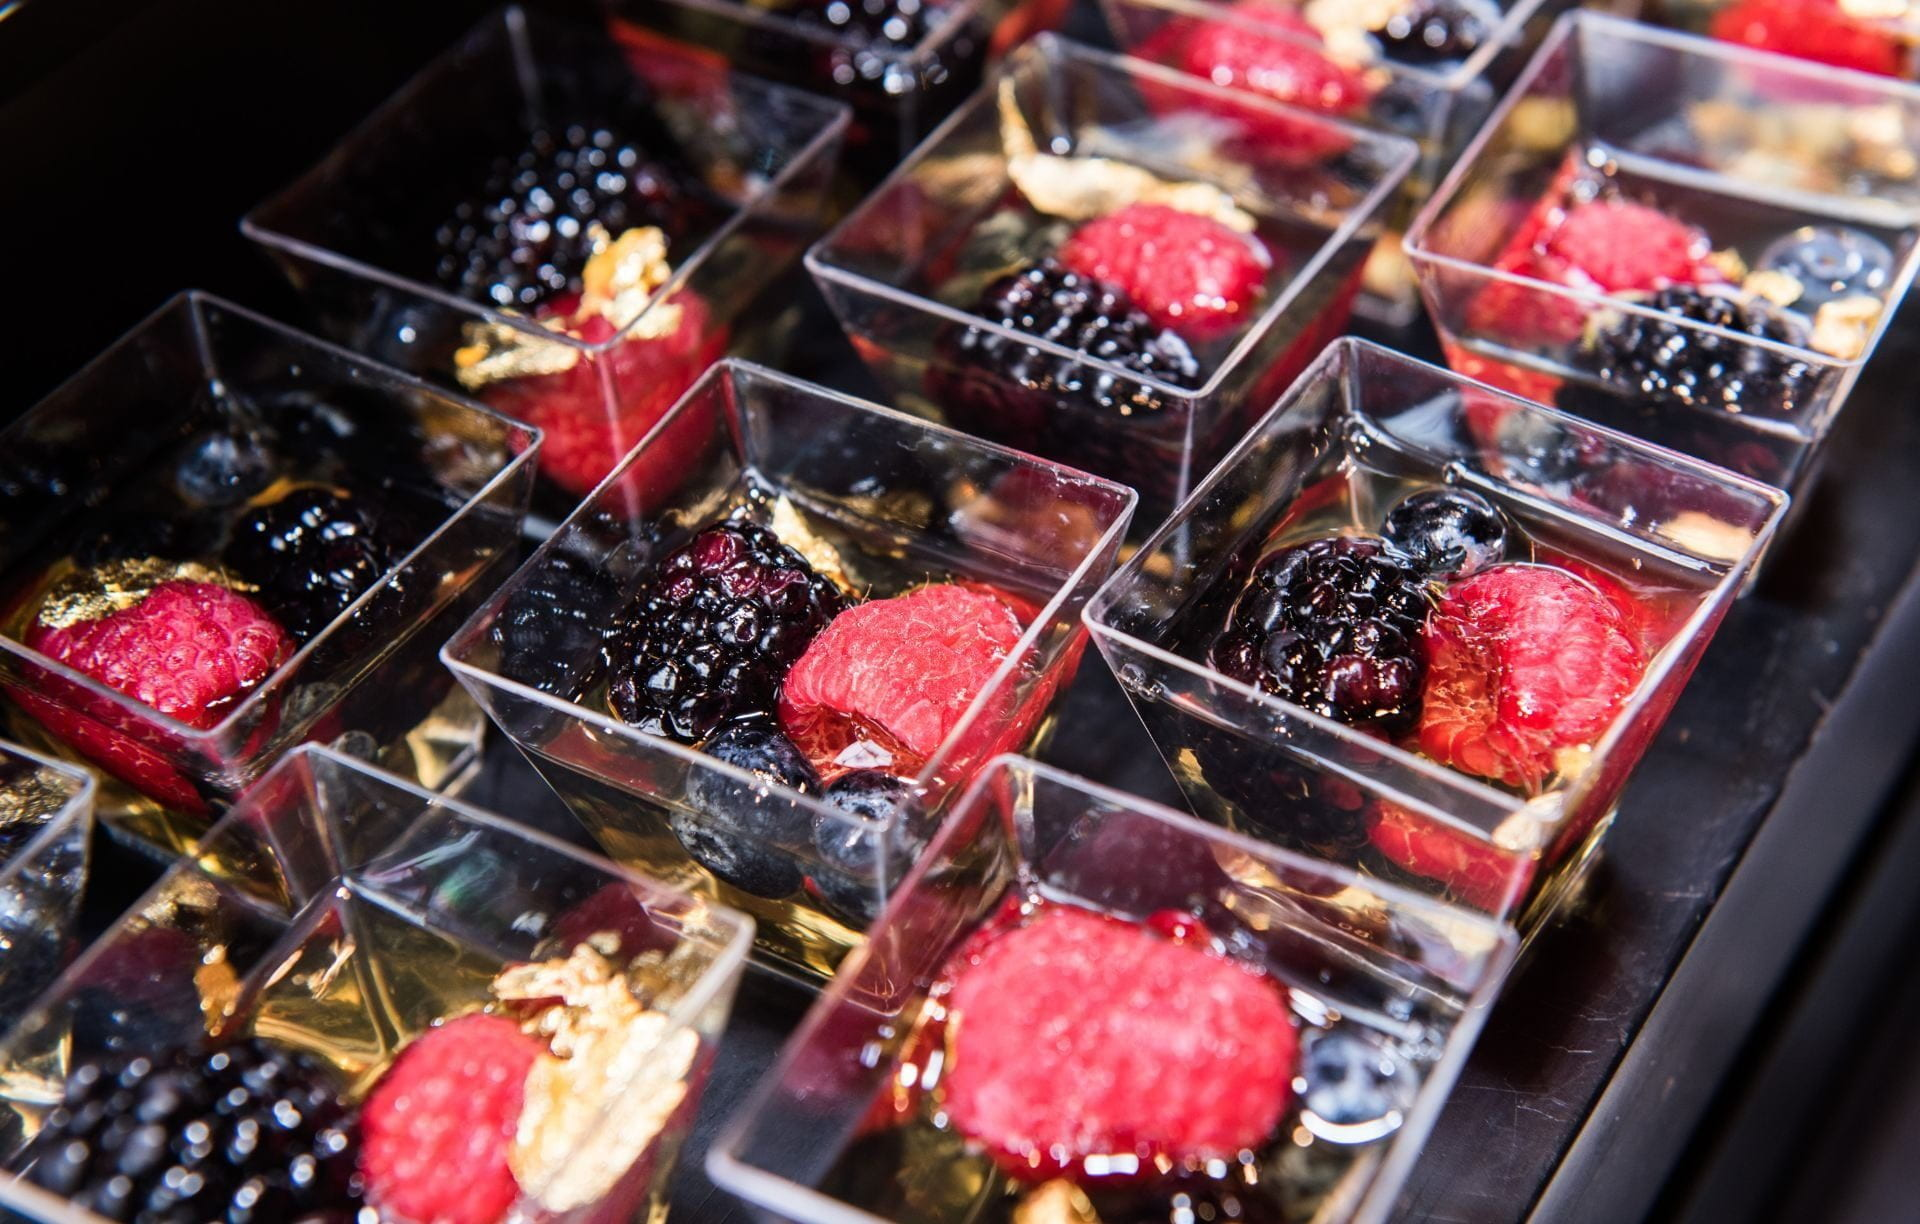 Berry Dessert from Catering Event